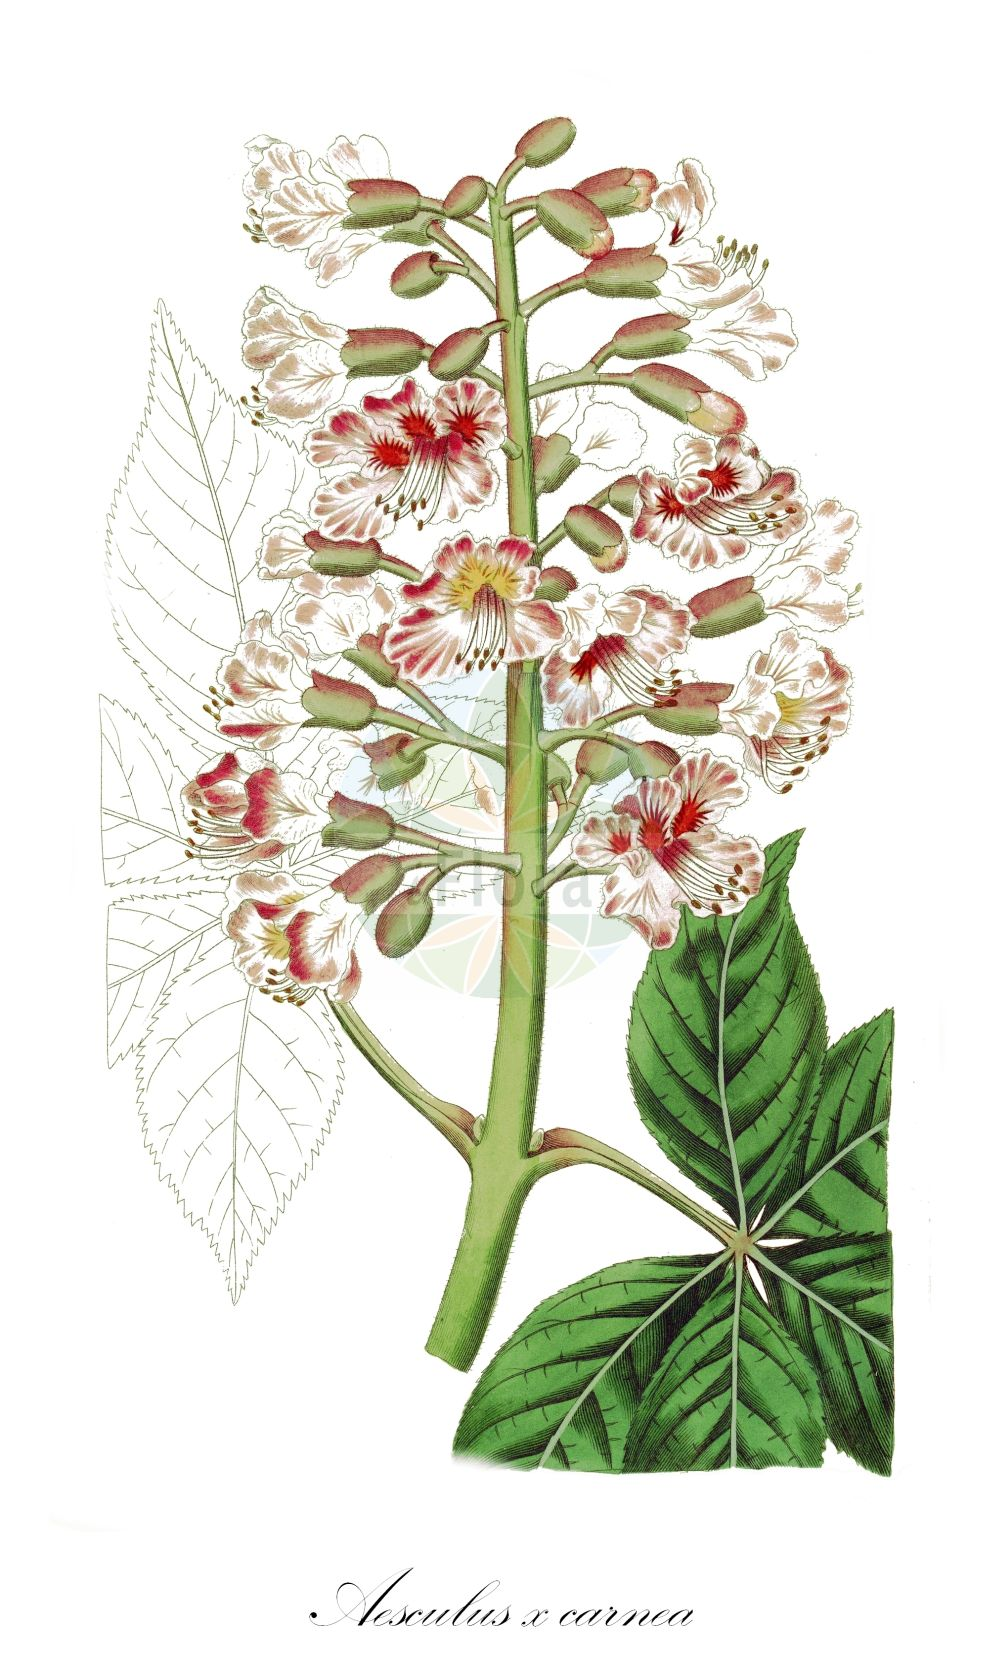 Historische Abbildung von Aesculus x carnea (Fleischrote Rosskastanie - Red Horse Chestnut). Das Bild zeigt Blatt, Bluete, Frucht und Same. ---- Historical Drawing of Aesculus x carnea (Fleischrote Rosskastanie - Red Horse Chestnut).The image is showing leaf, flower, fruit and seed. (Aesculus x carnea,Fleischrote Rosskastanie,Red Horse Chestnut,Rote Rosskastanie,Aesculus,Rosskastanie,Horse-chestnut,Sapindaceae,Seifenbaumgewaechse,Soapberry family,Blatt,Bluete,Frucht,Same,leaf,flower,fruit,seed,Hart (1827))